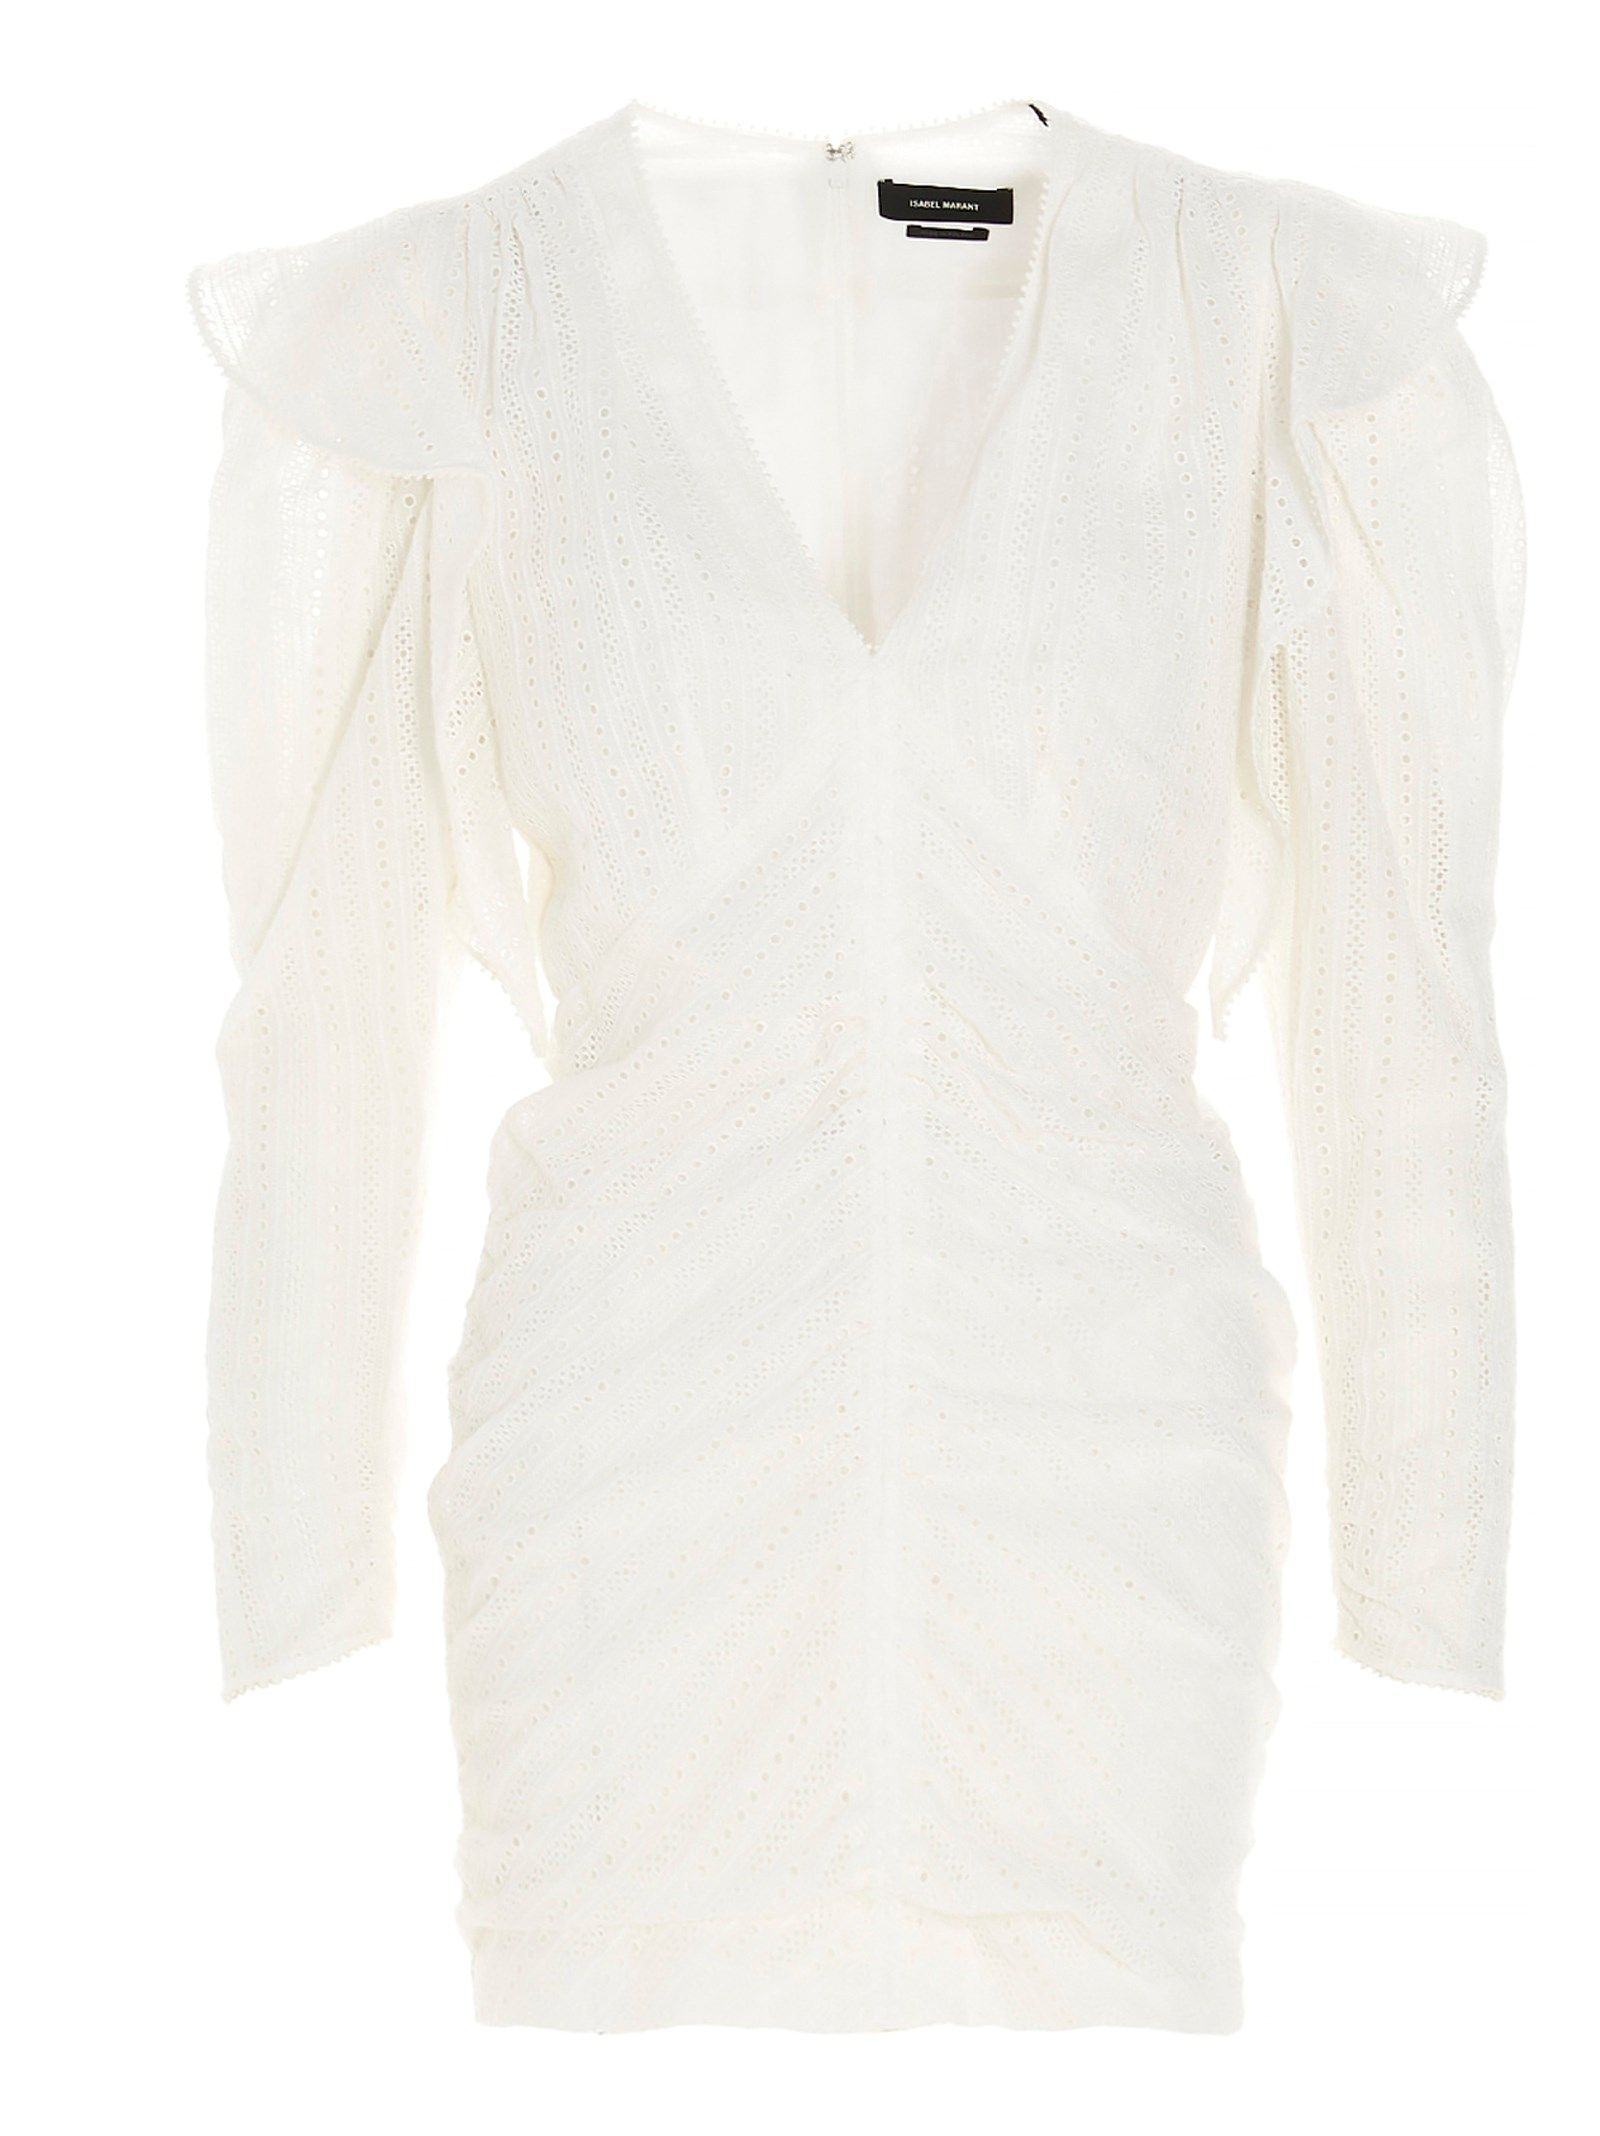 Isabel Marant ISABEL MARANT WOMEN'S RO191921P024I20WH WHITE OTHER MATERIALS DRESS